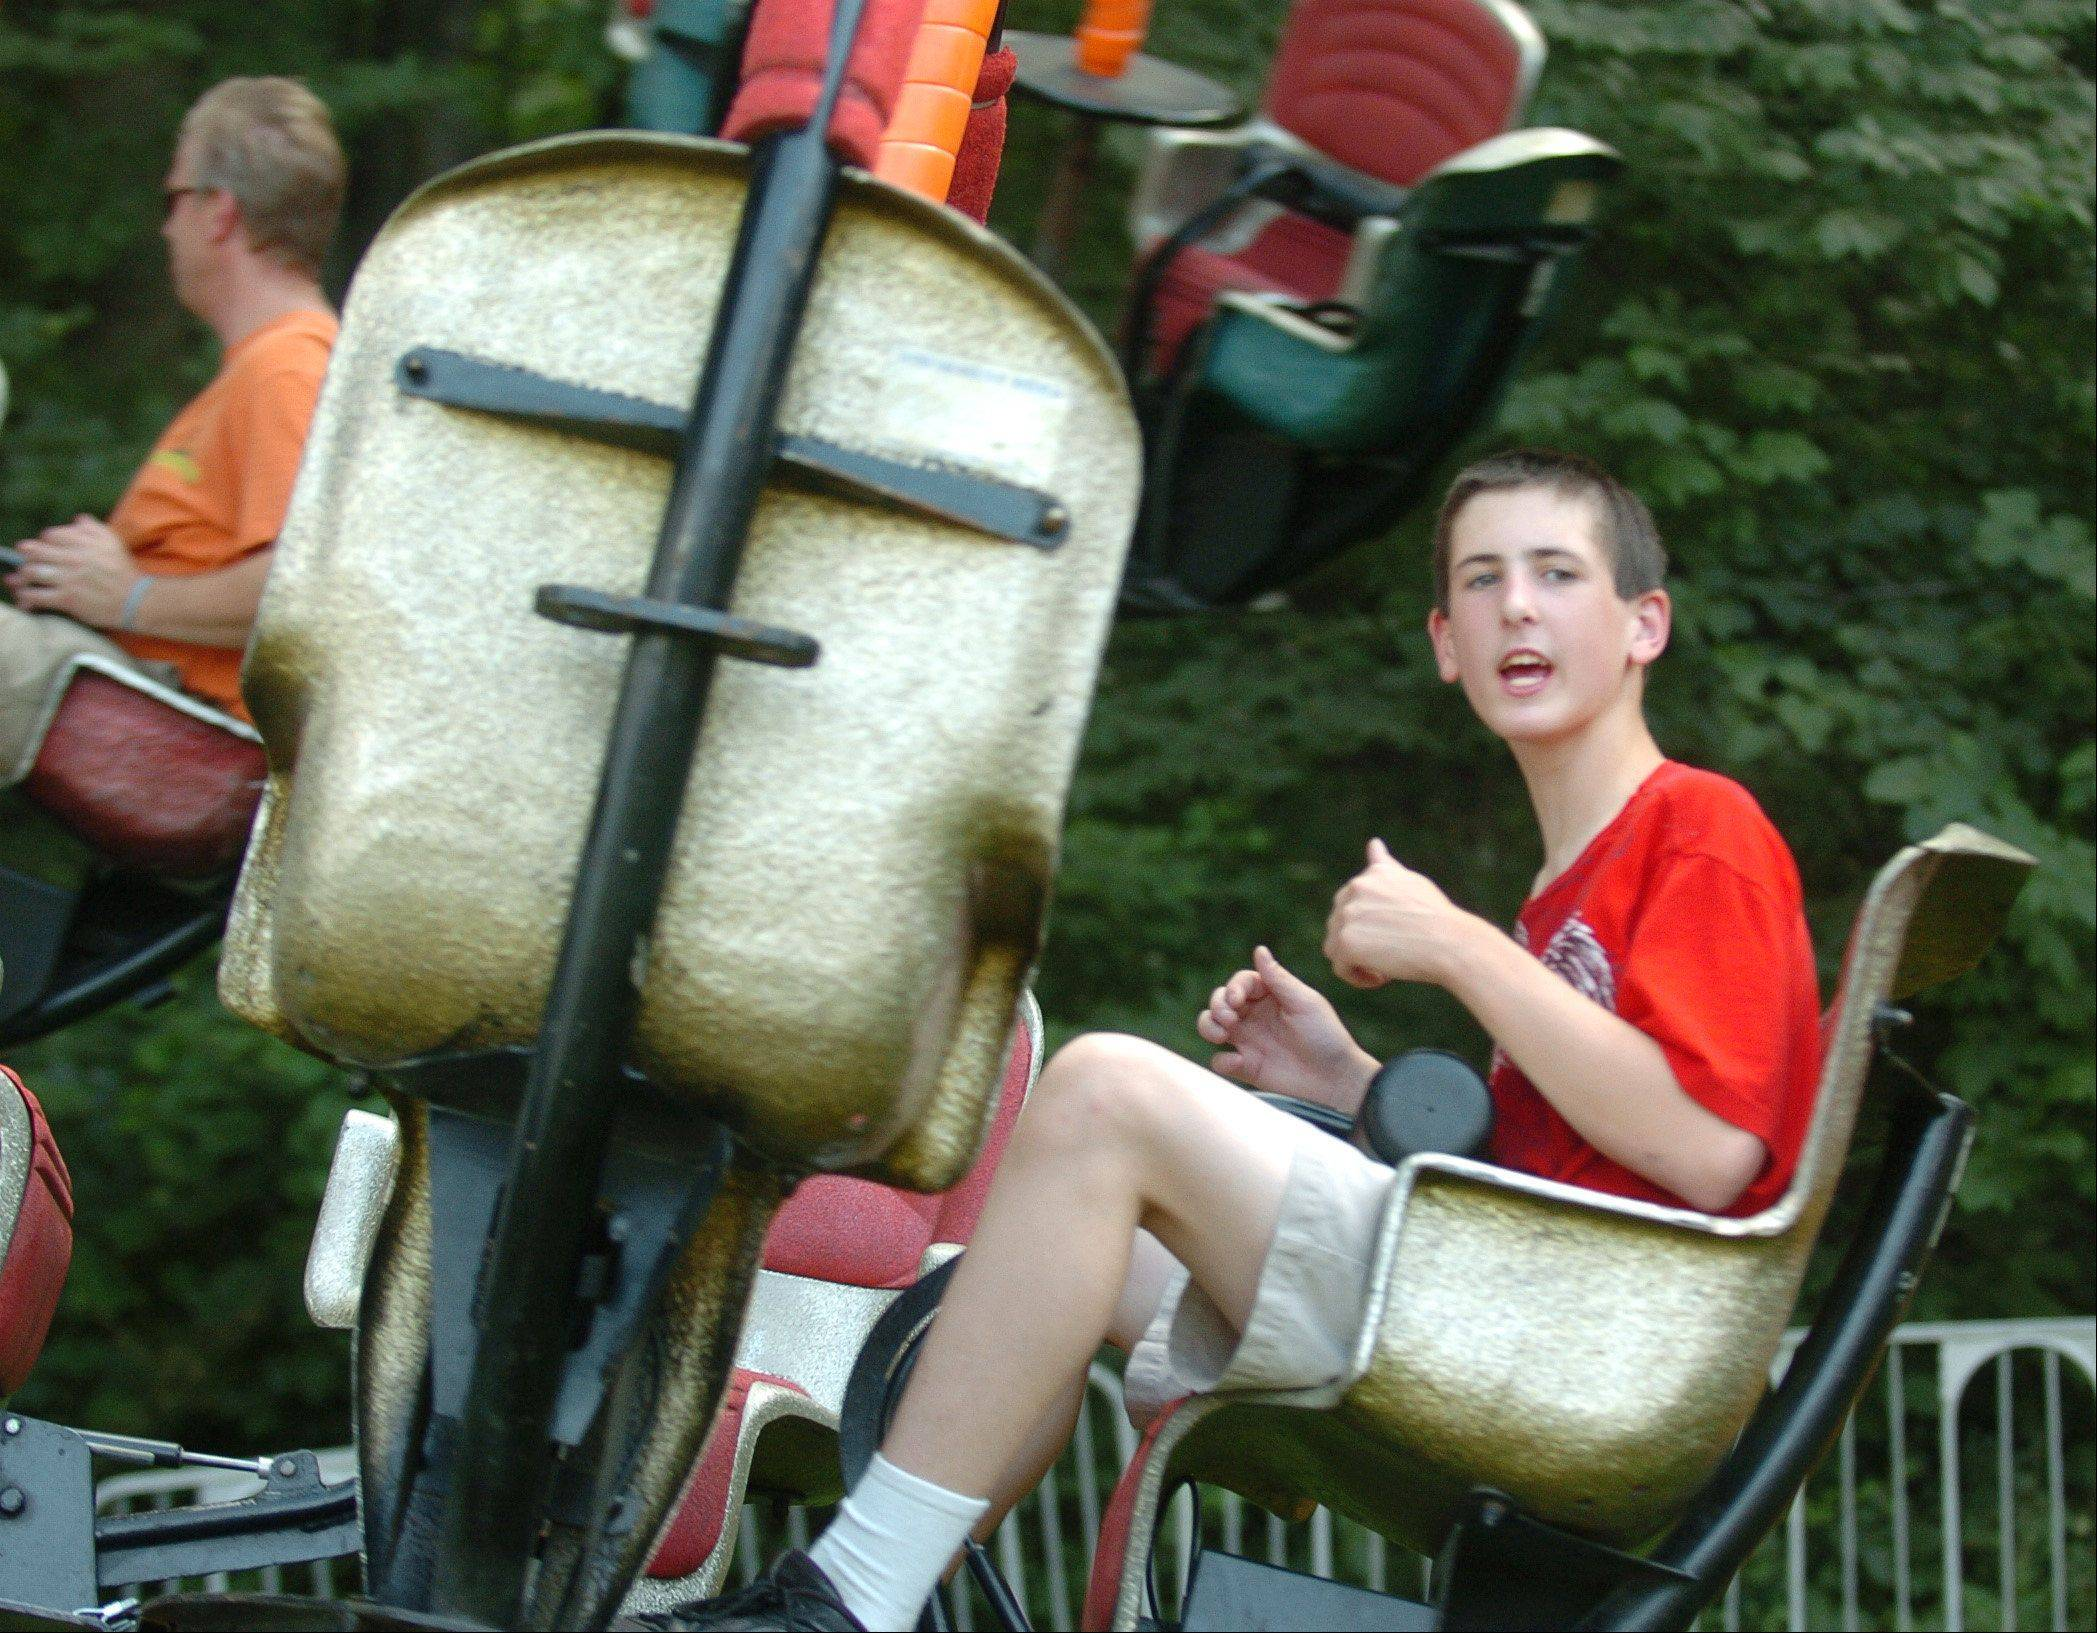 Jonathan Saylor, 15, of Hampshire, enjoys the thrill ride at the carnival for special-needs kids during last year's Algonquin Founders' Days. He attended the carnival with his mom Vicki.